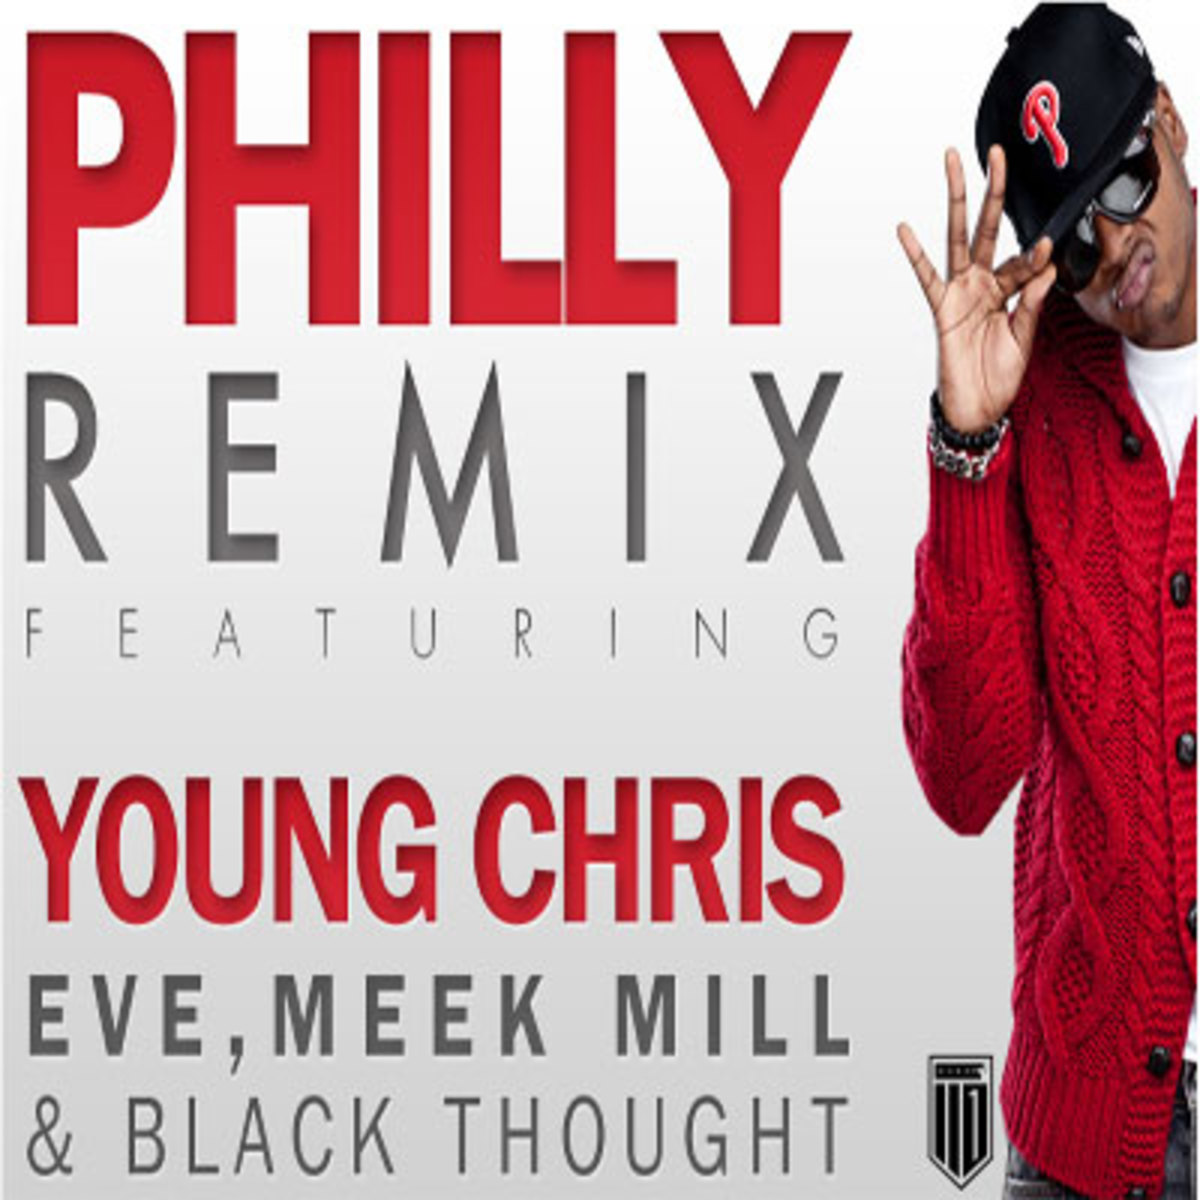 youngchris-phillyrmx.jpg